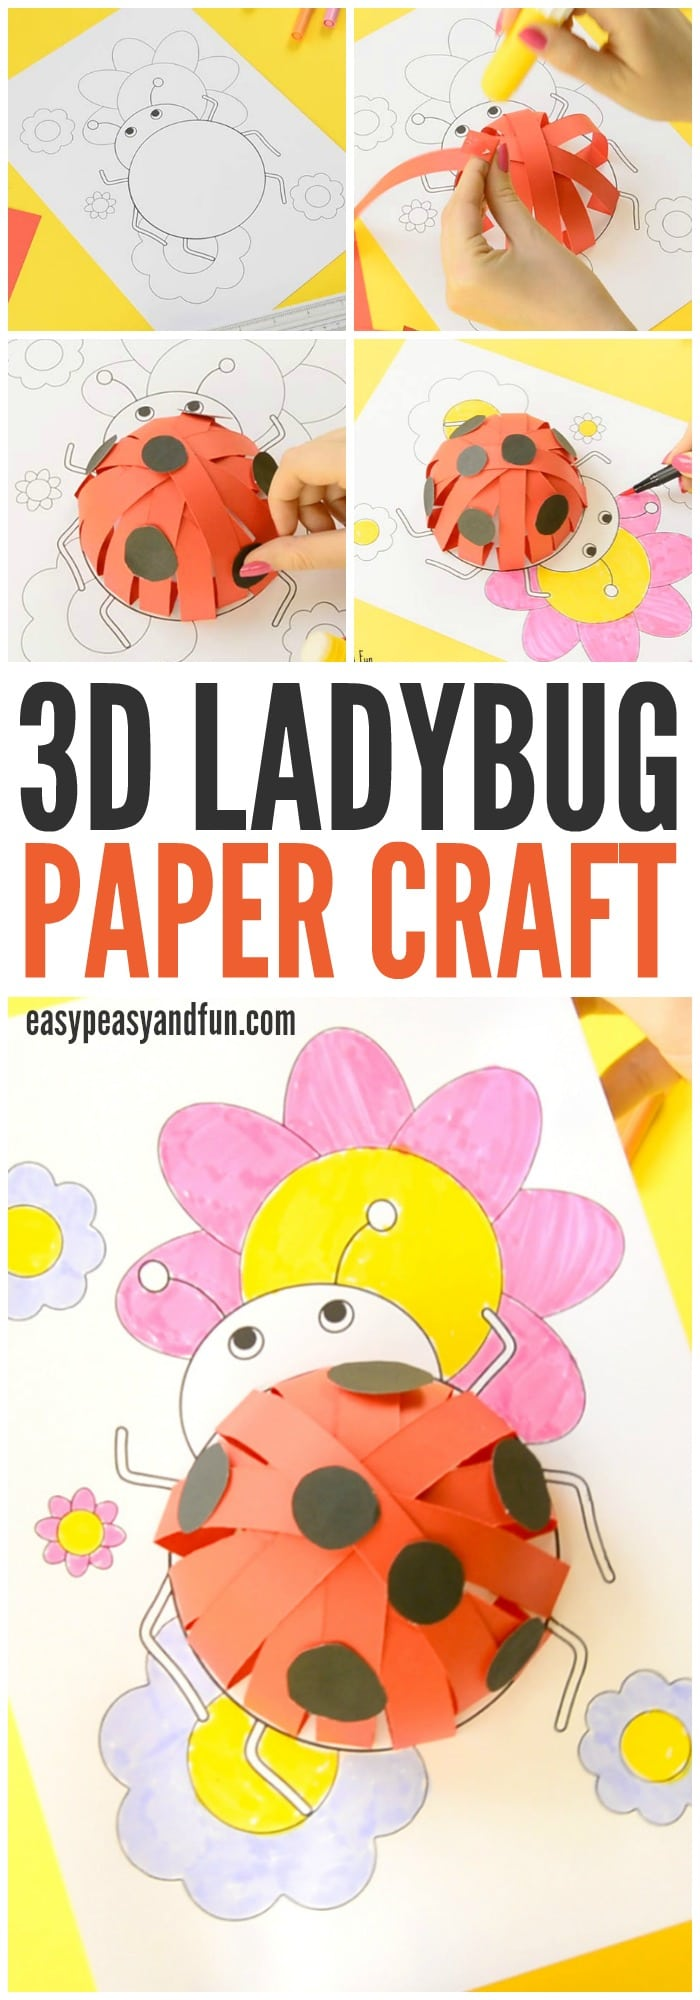 3D Ladybug Paper Craft for Kids to Make With Free Template